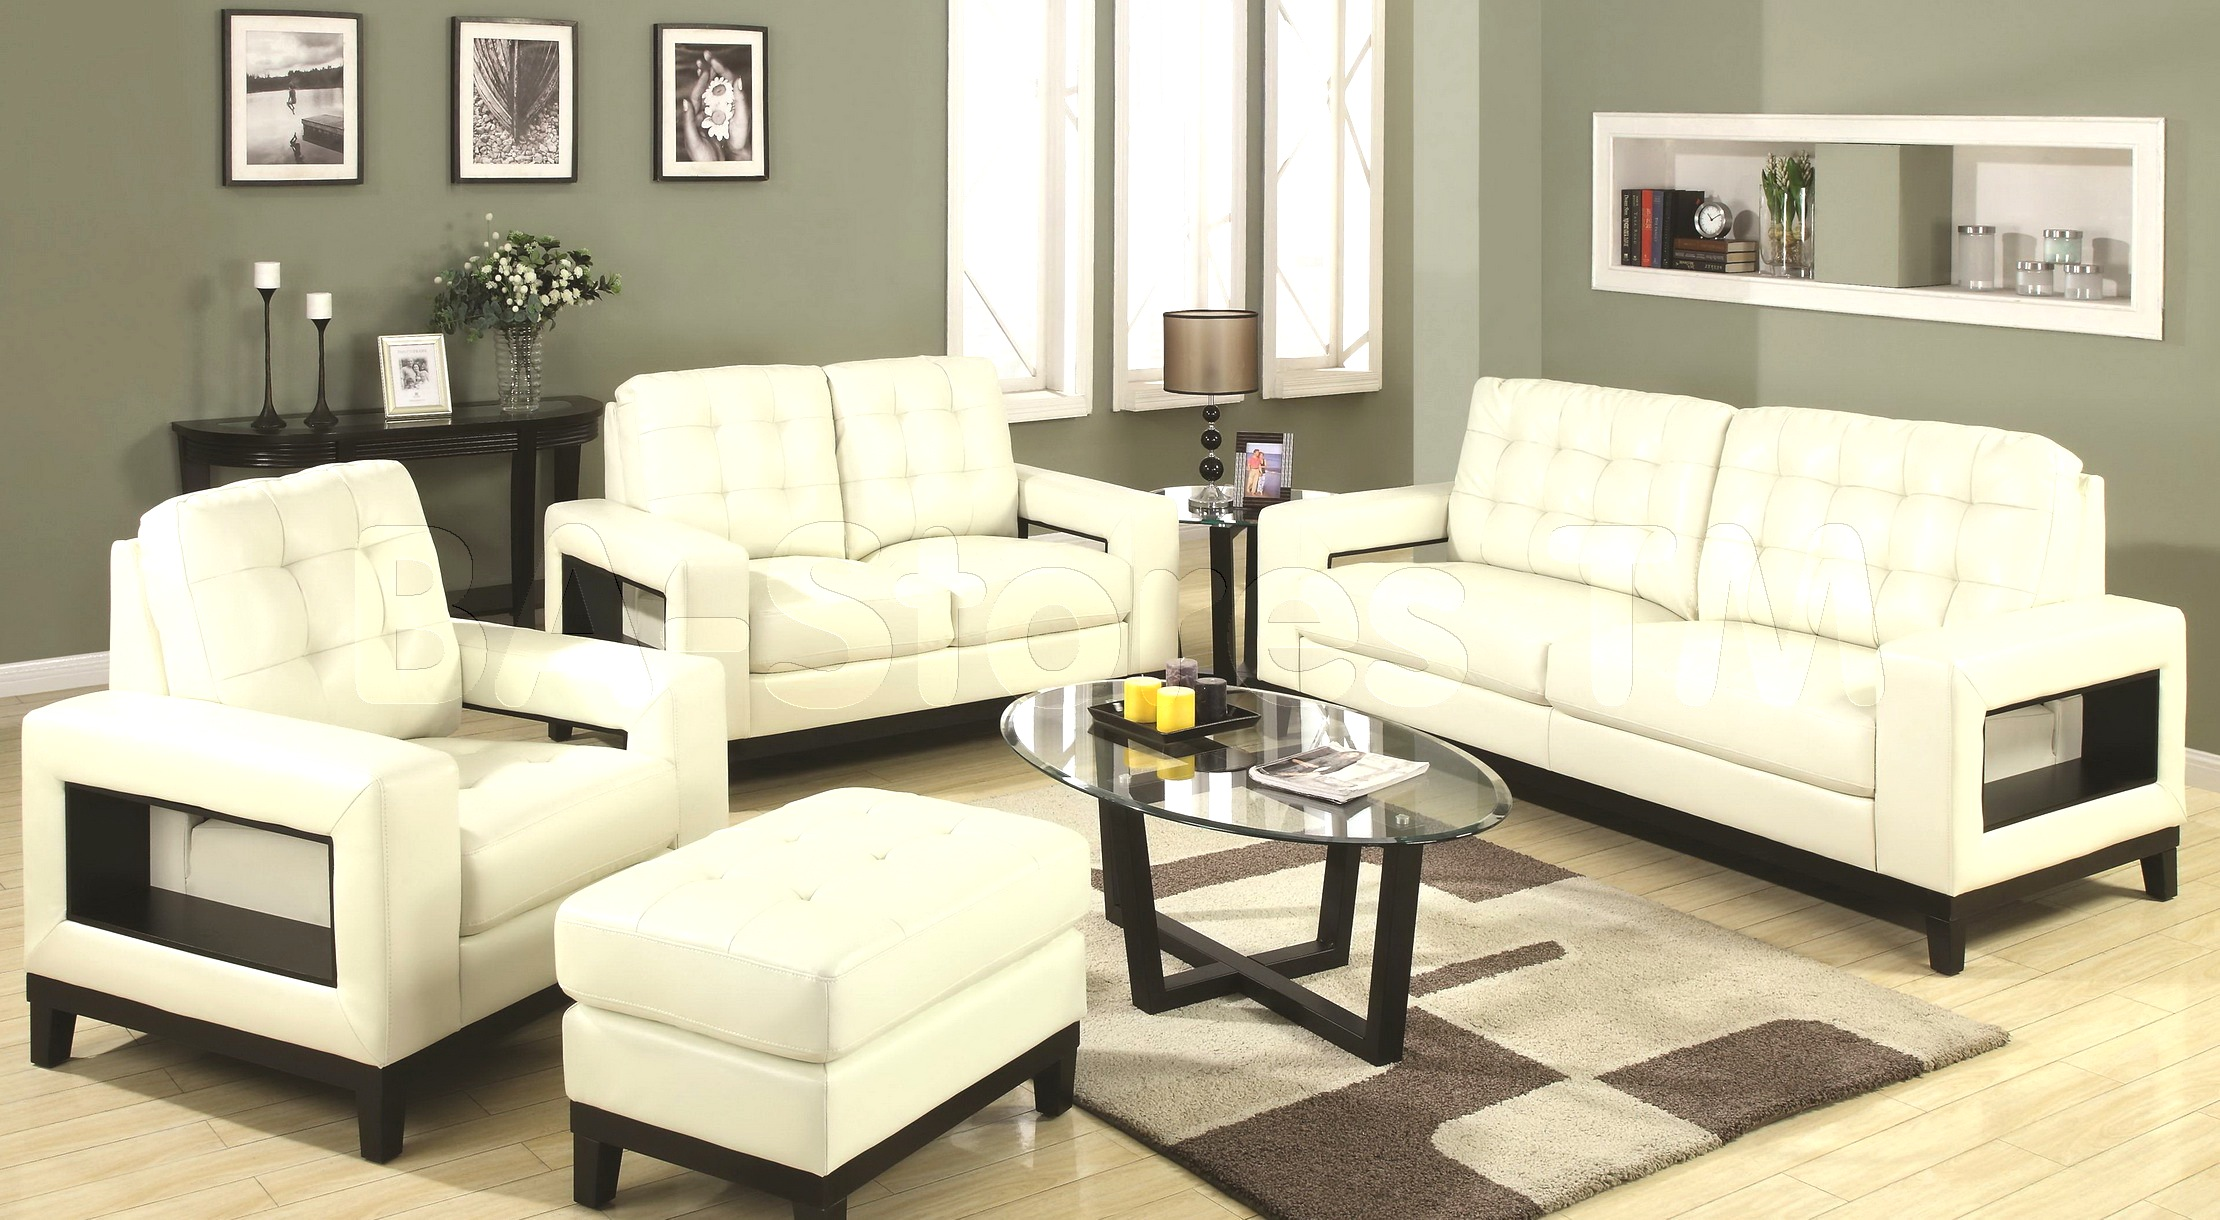 Sofa set in living room for Drawing room furniture set